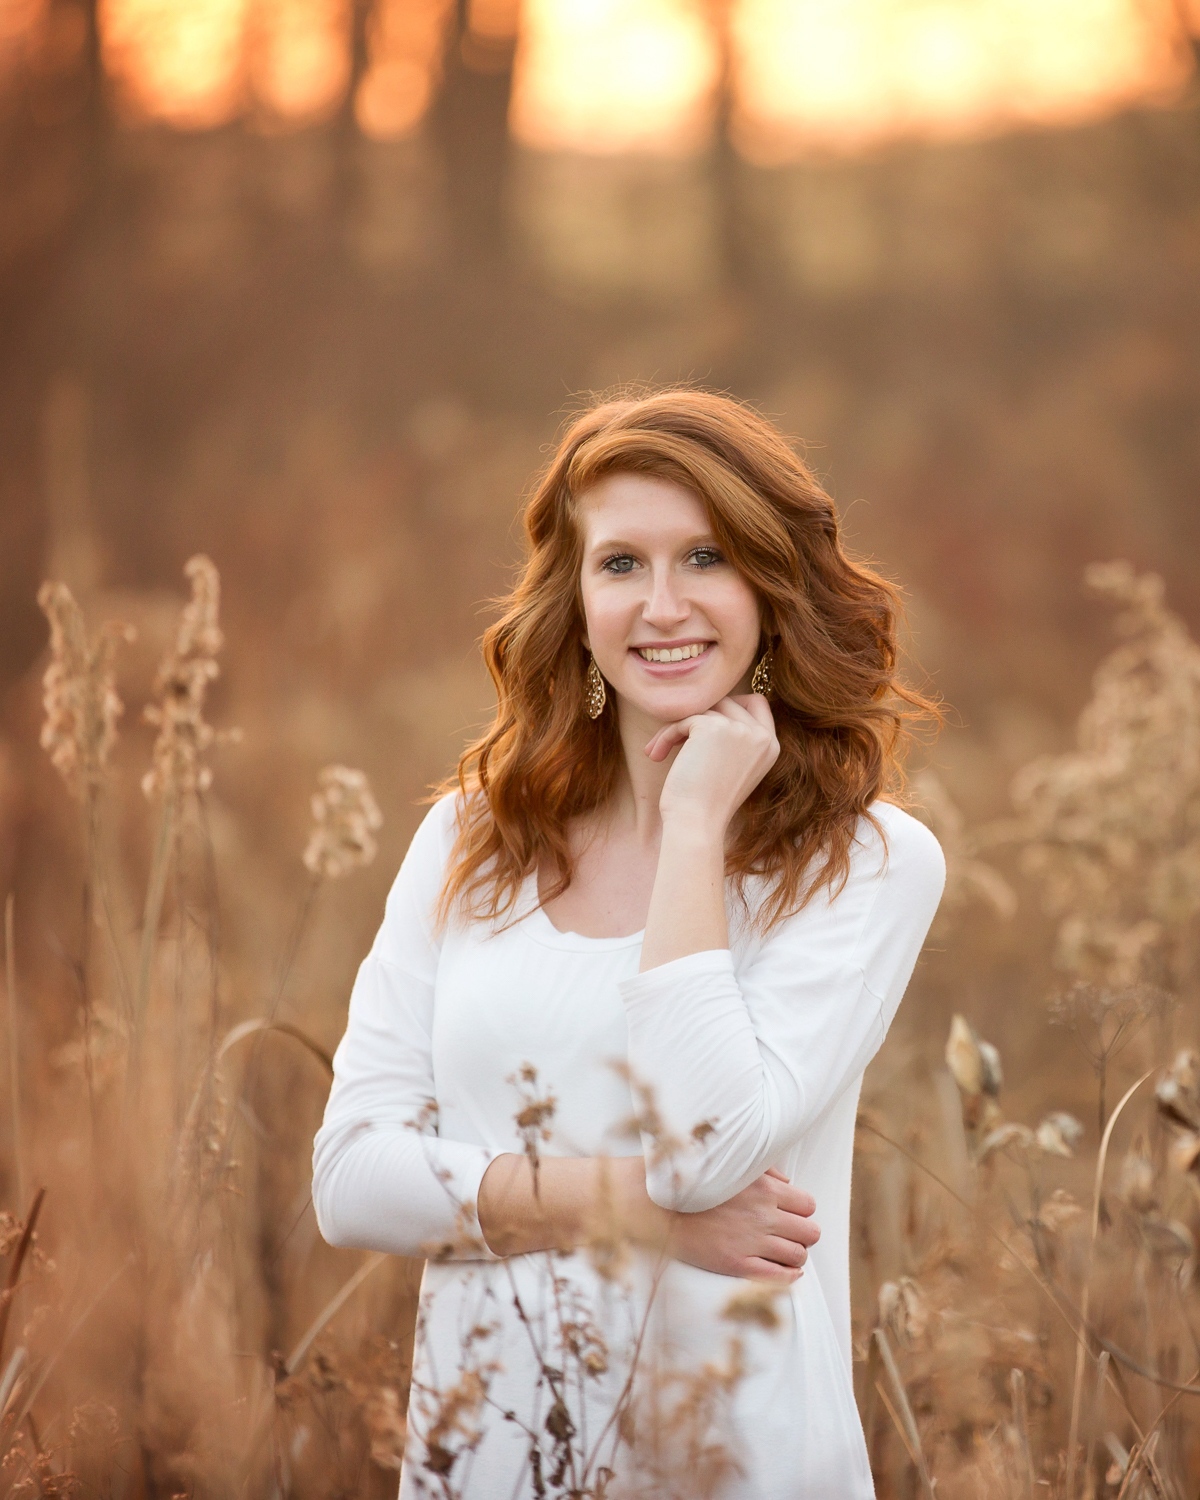 red-headed senior girl wearing a white dress at sunset staning in a field of dried weeds with a woods and sunset behind her in Fredericksburg Ohio